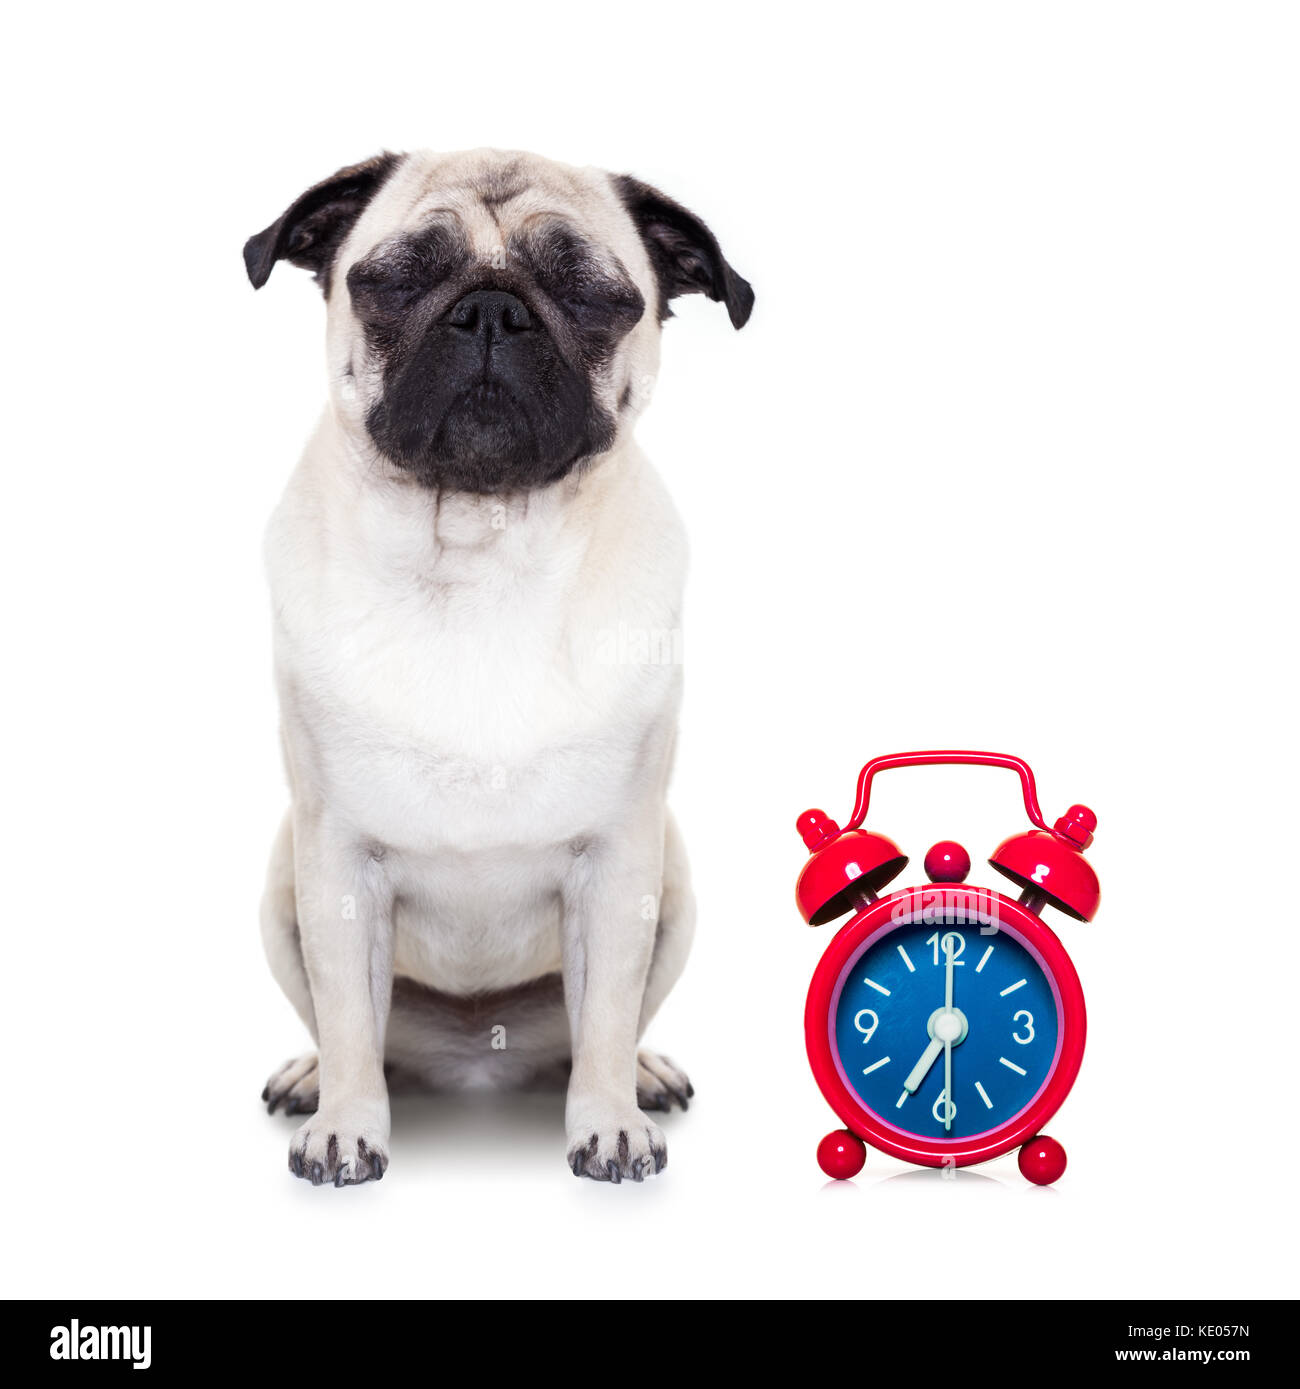 pug  dog  resting ,sleeping or having a siesta  with alarm  clock ,isolated on white  background - Stock Image